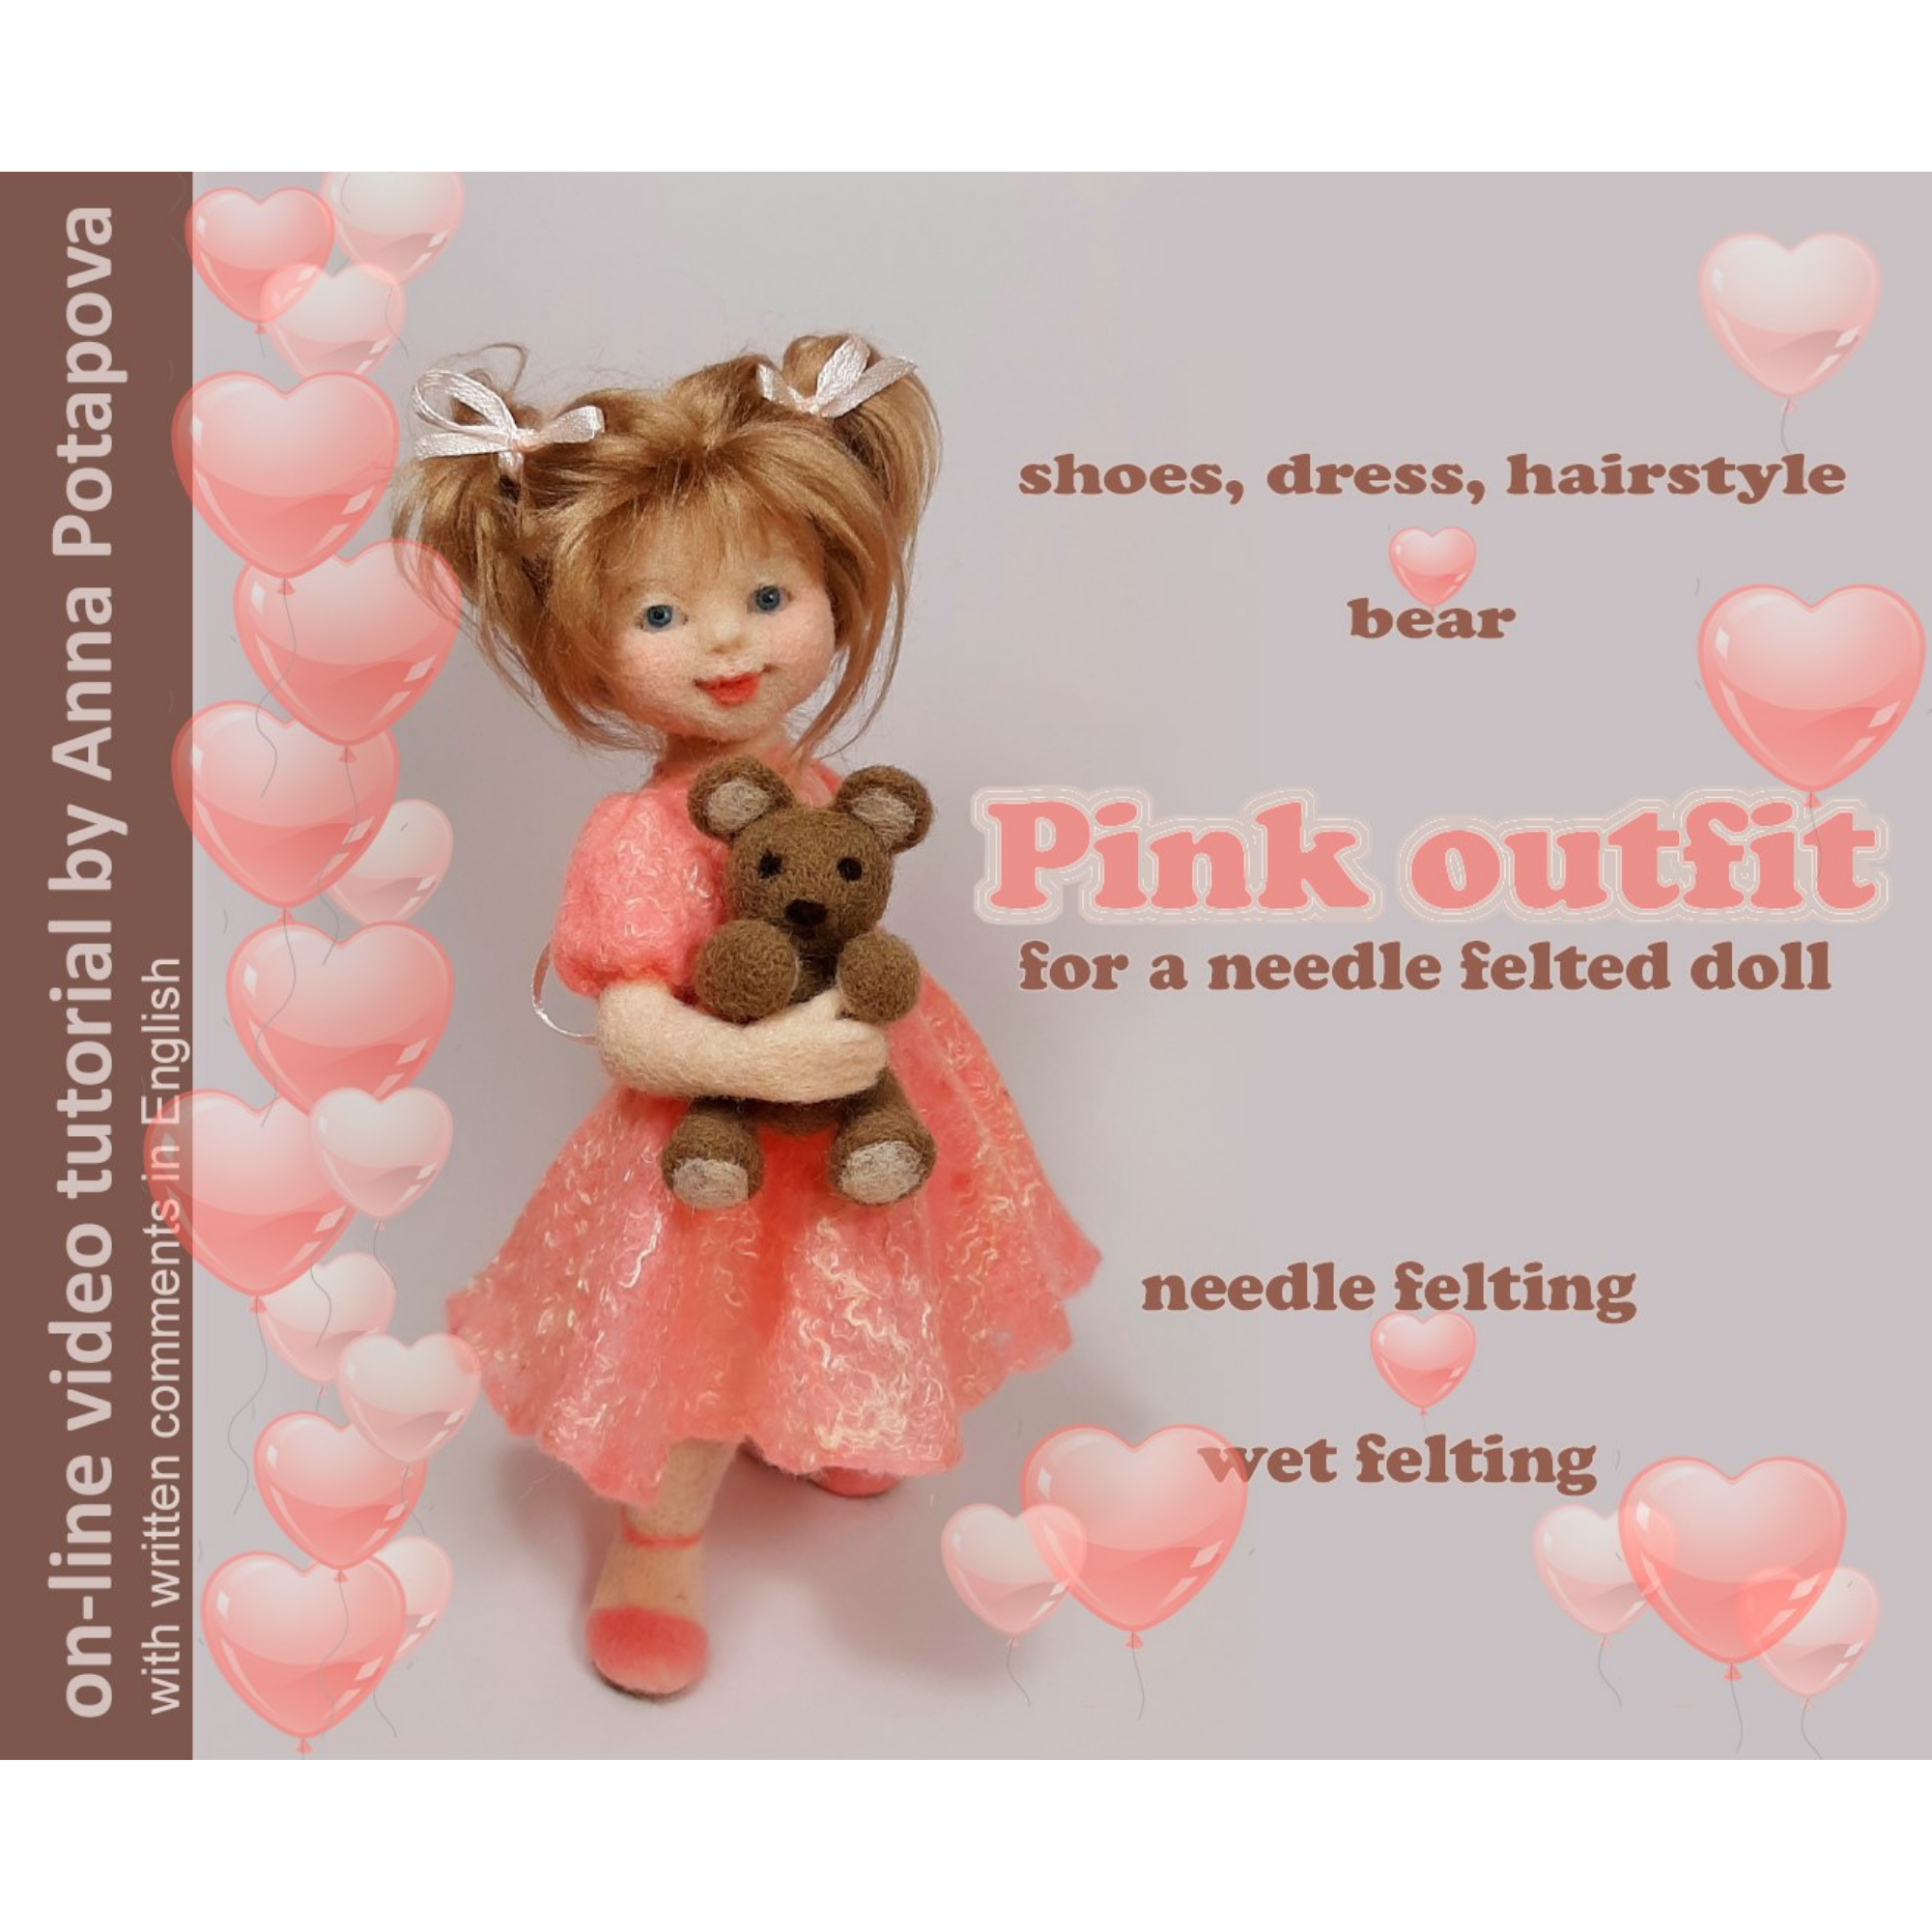 Online Felting Workshop by Anna Potapova - 'Hope' ballerina outfit and teddy bear - kit with 75 minutes high quality online video tutorial.  INCLUDES *FREE DELIVERY